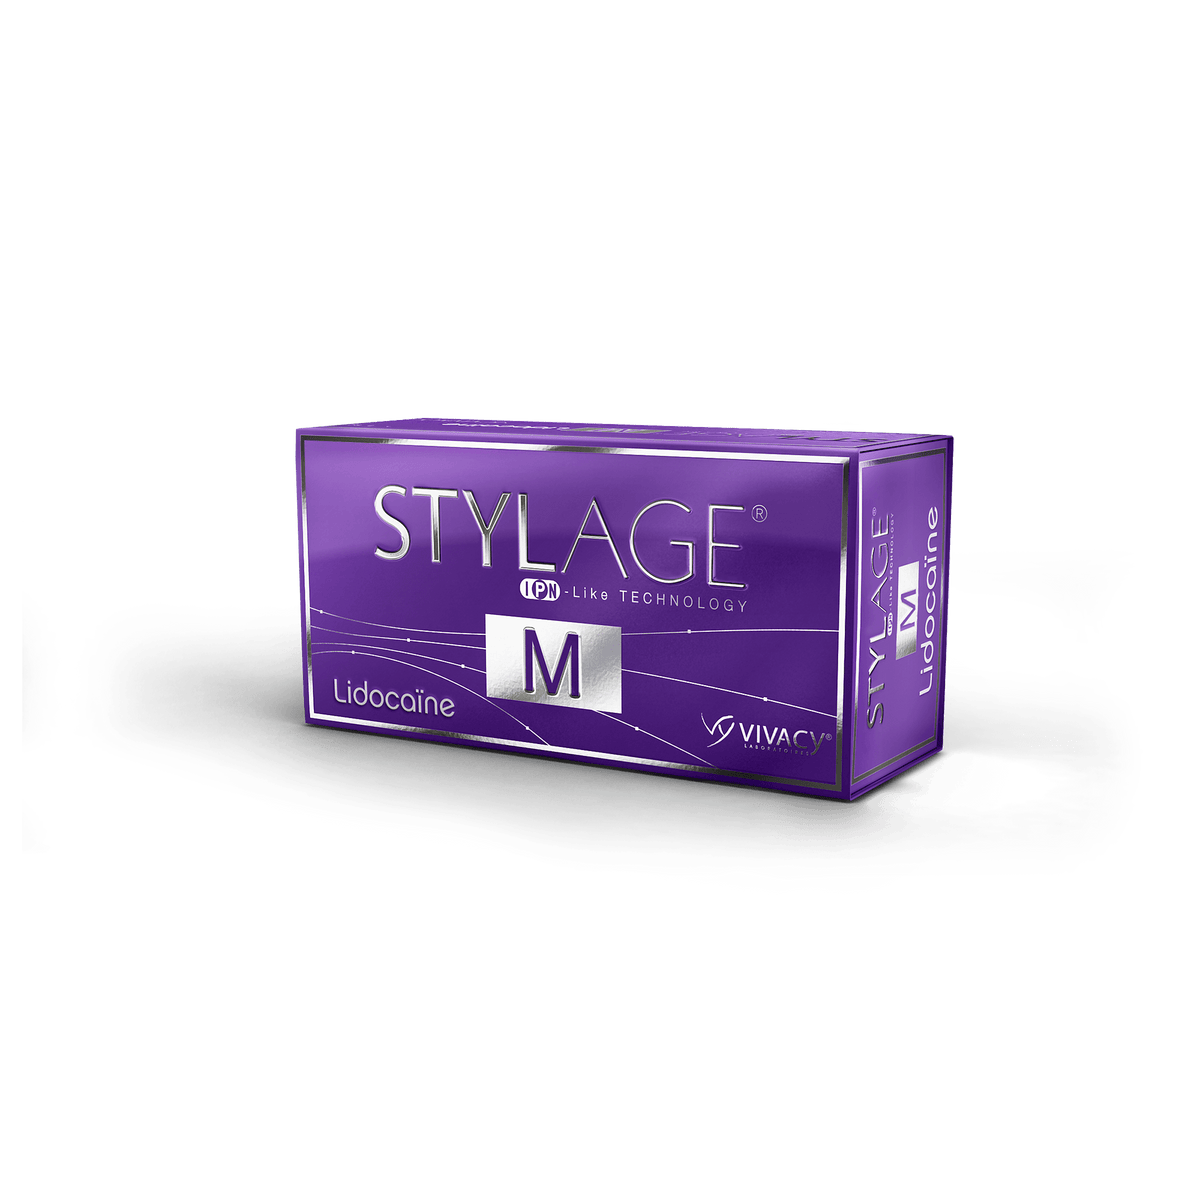 Vivacy - Stylage M Lidocain 2 x 1ml - DANYCARE